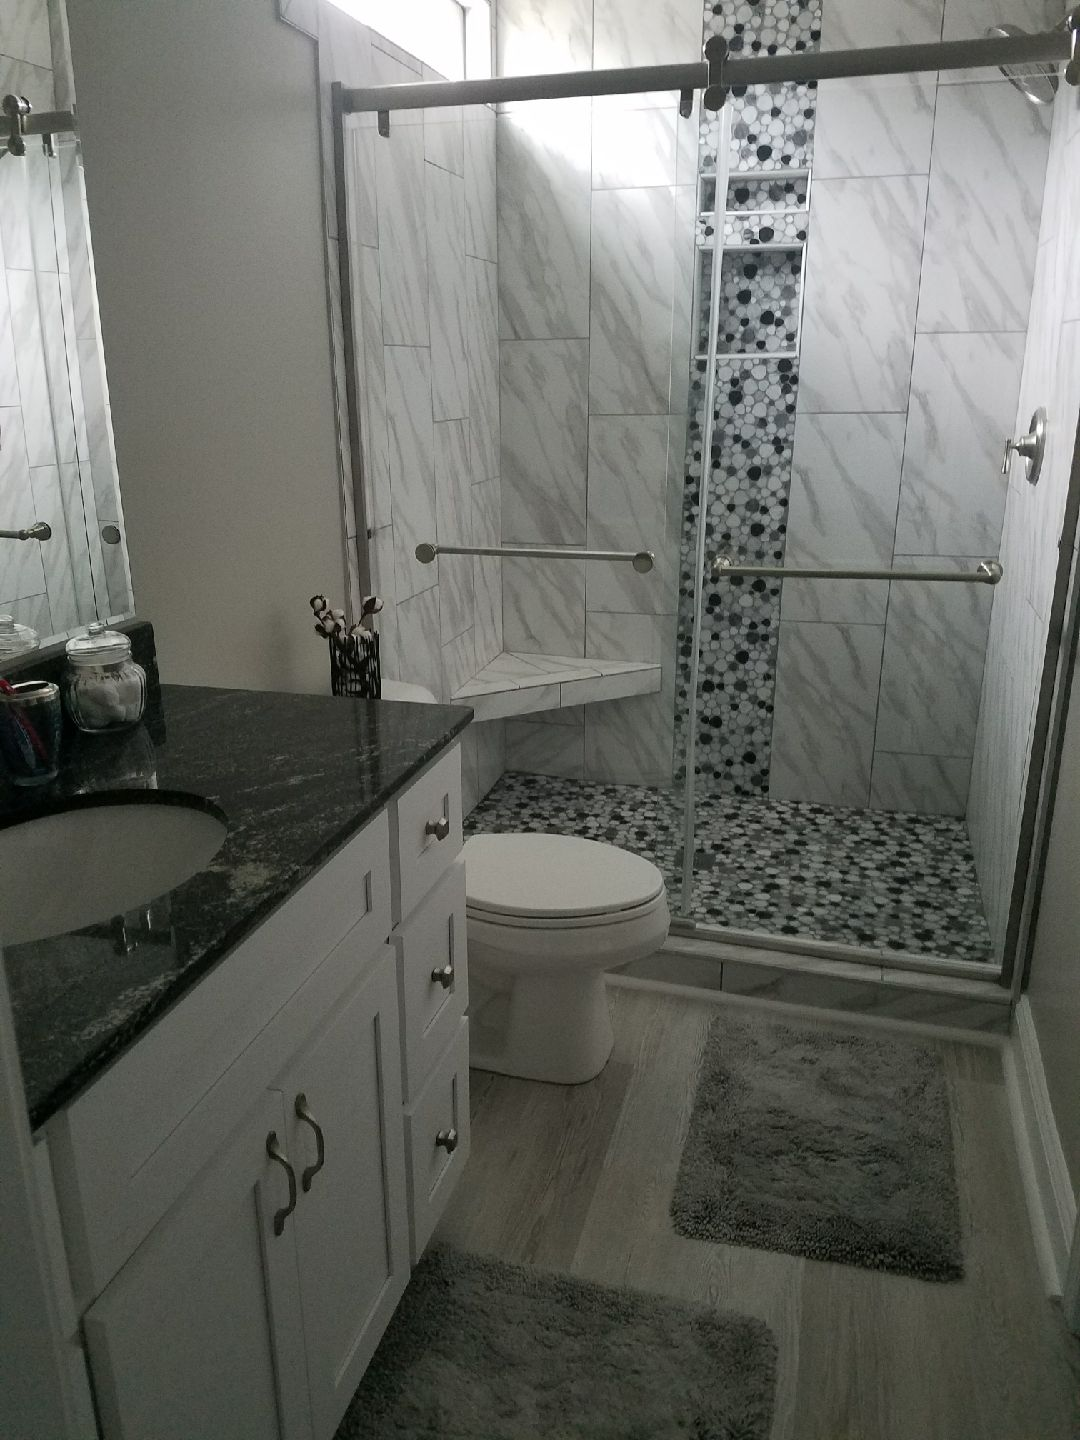 Our 5x10 Bathroom Felt So Cramped We Reinvented The Same Space And Now It Feels Much Big Small Bathroom Layout Elegant Bathroom Design Bathroom Layout Plans